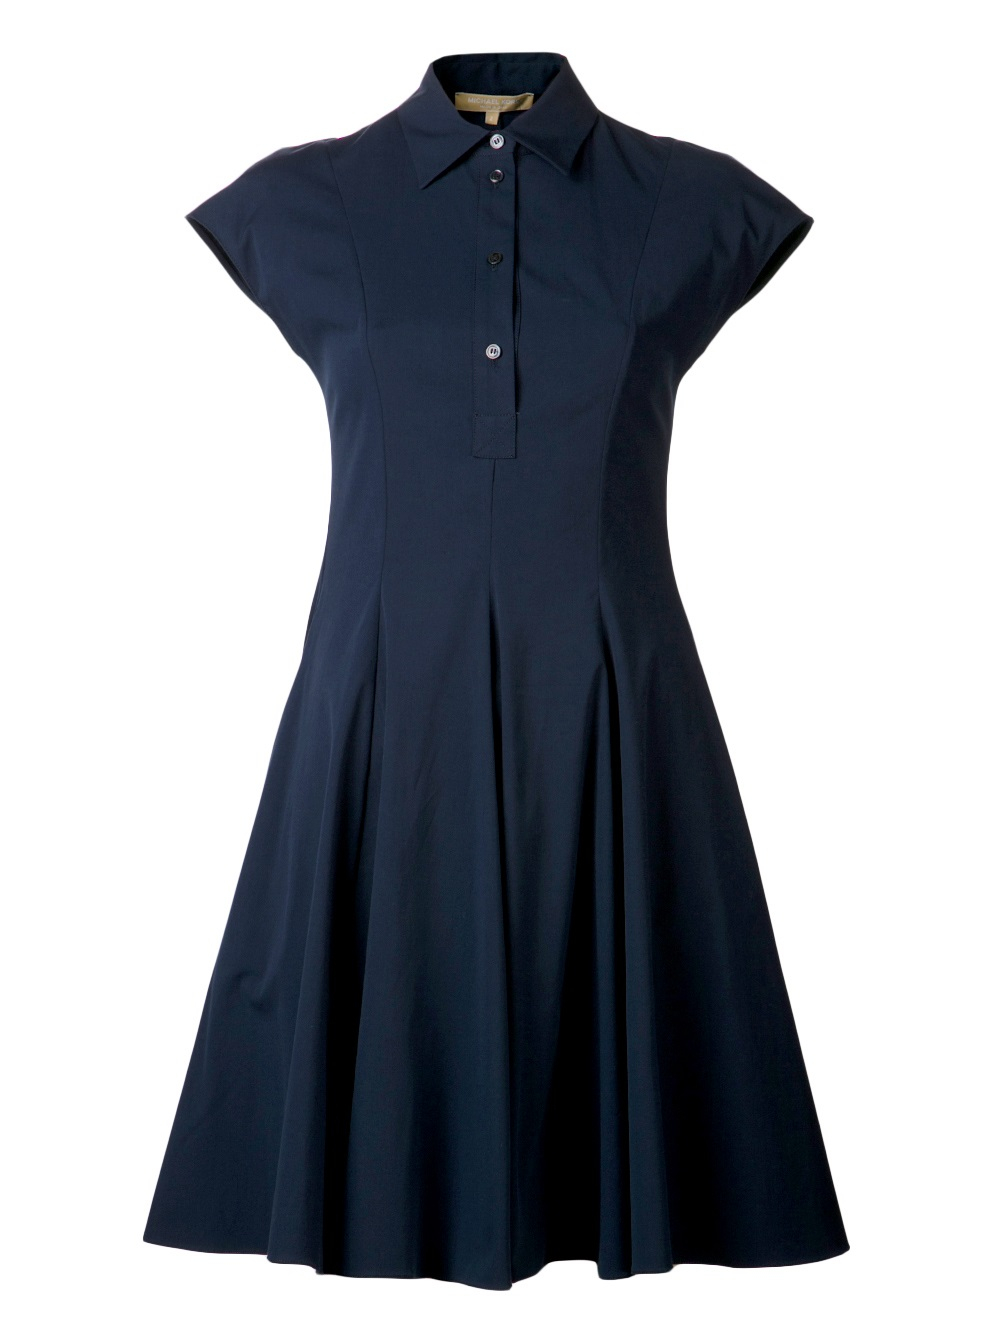 michael kors poplin shirt dress in blue lyst. Black Bedroom Furniture Sets. Home Design Ideas